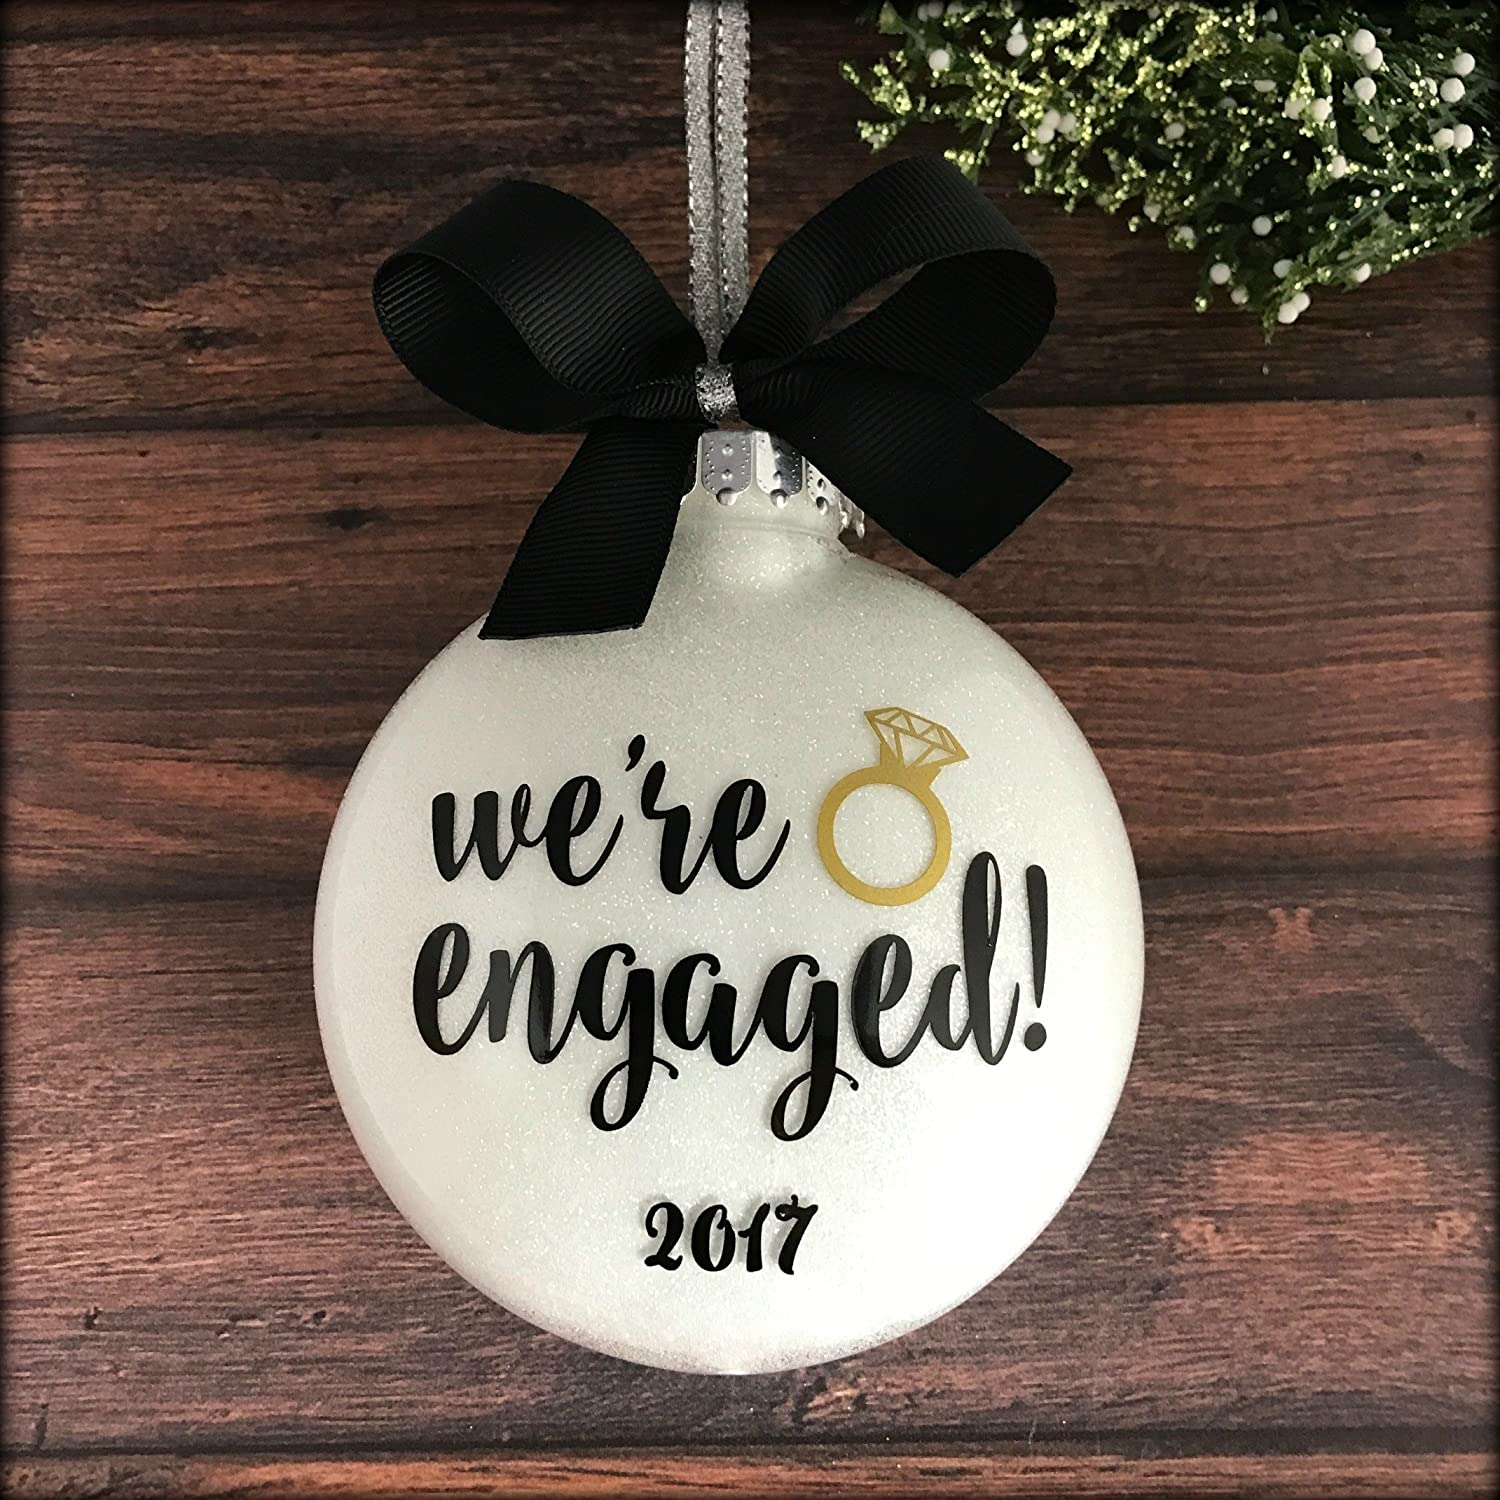 Couples christmas ornaments - Amazon Com Engaged Ornament Engagement Christmas Ornament Personalized Engagement Ornaments Handmade